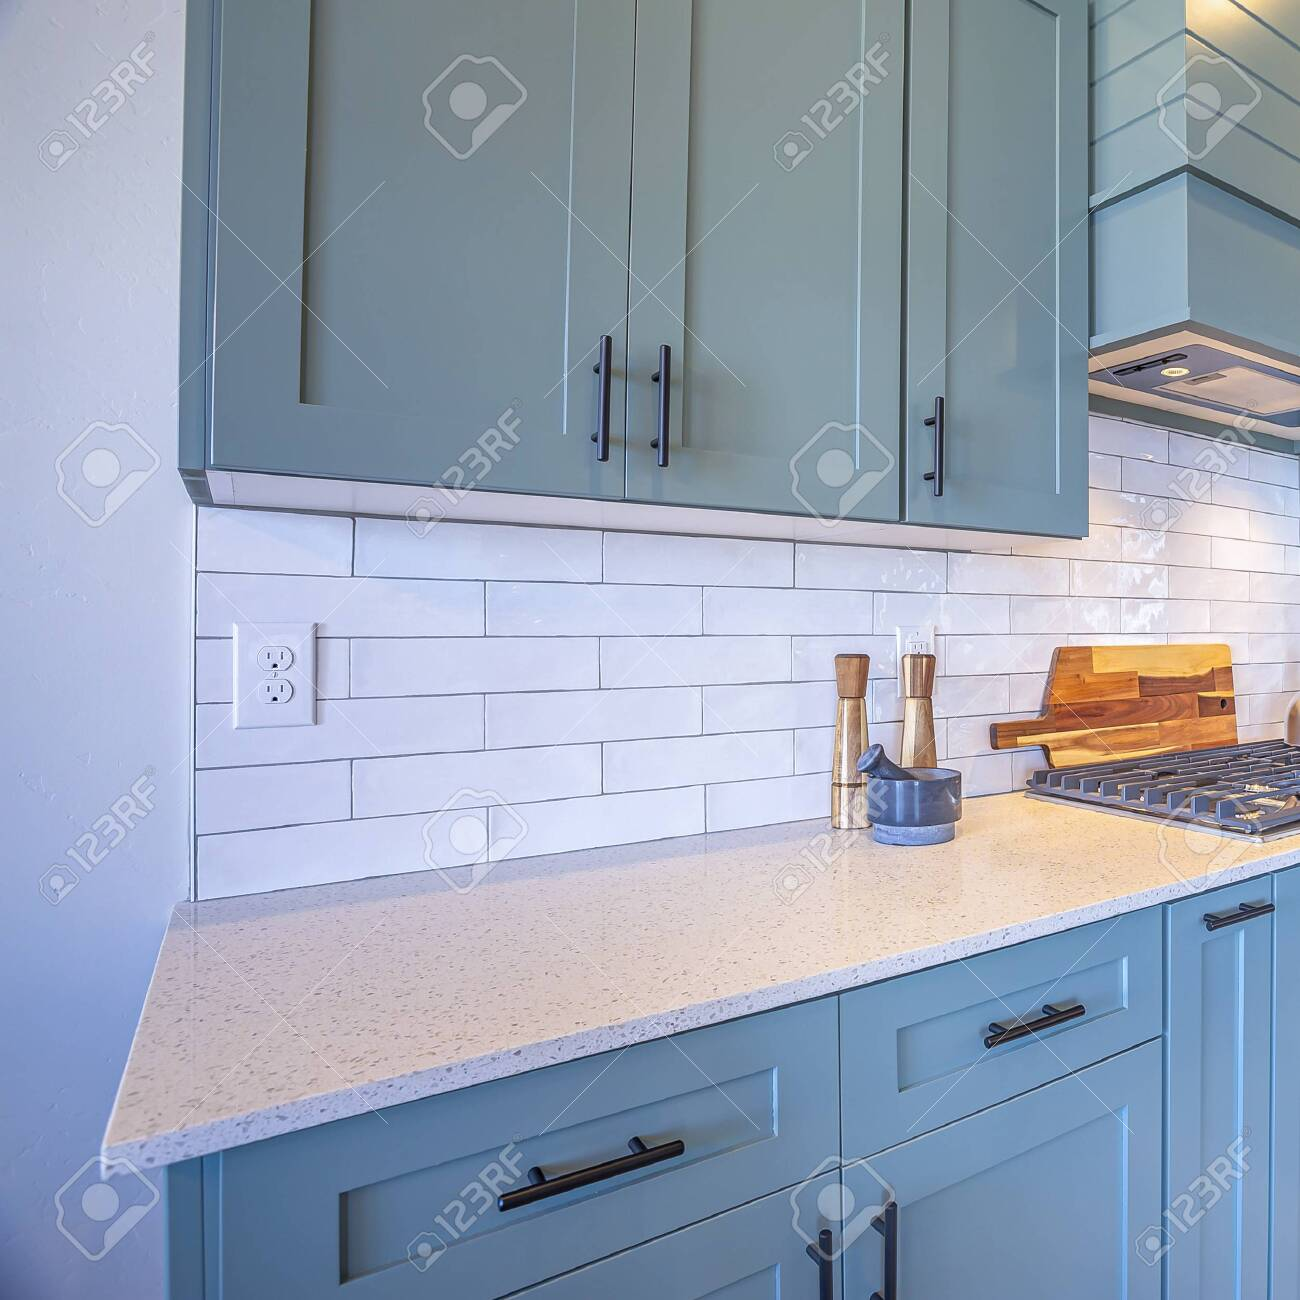 - Square Frame Kitchen With White Counter Top And Bluish Gray